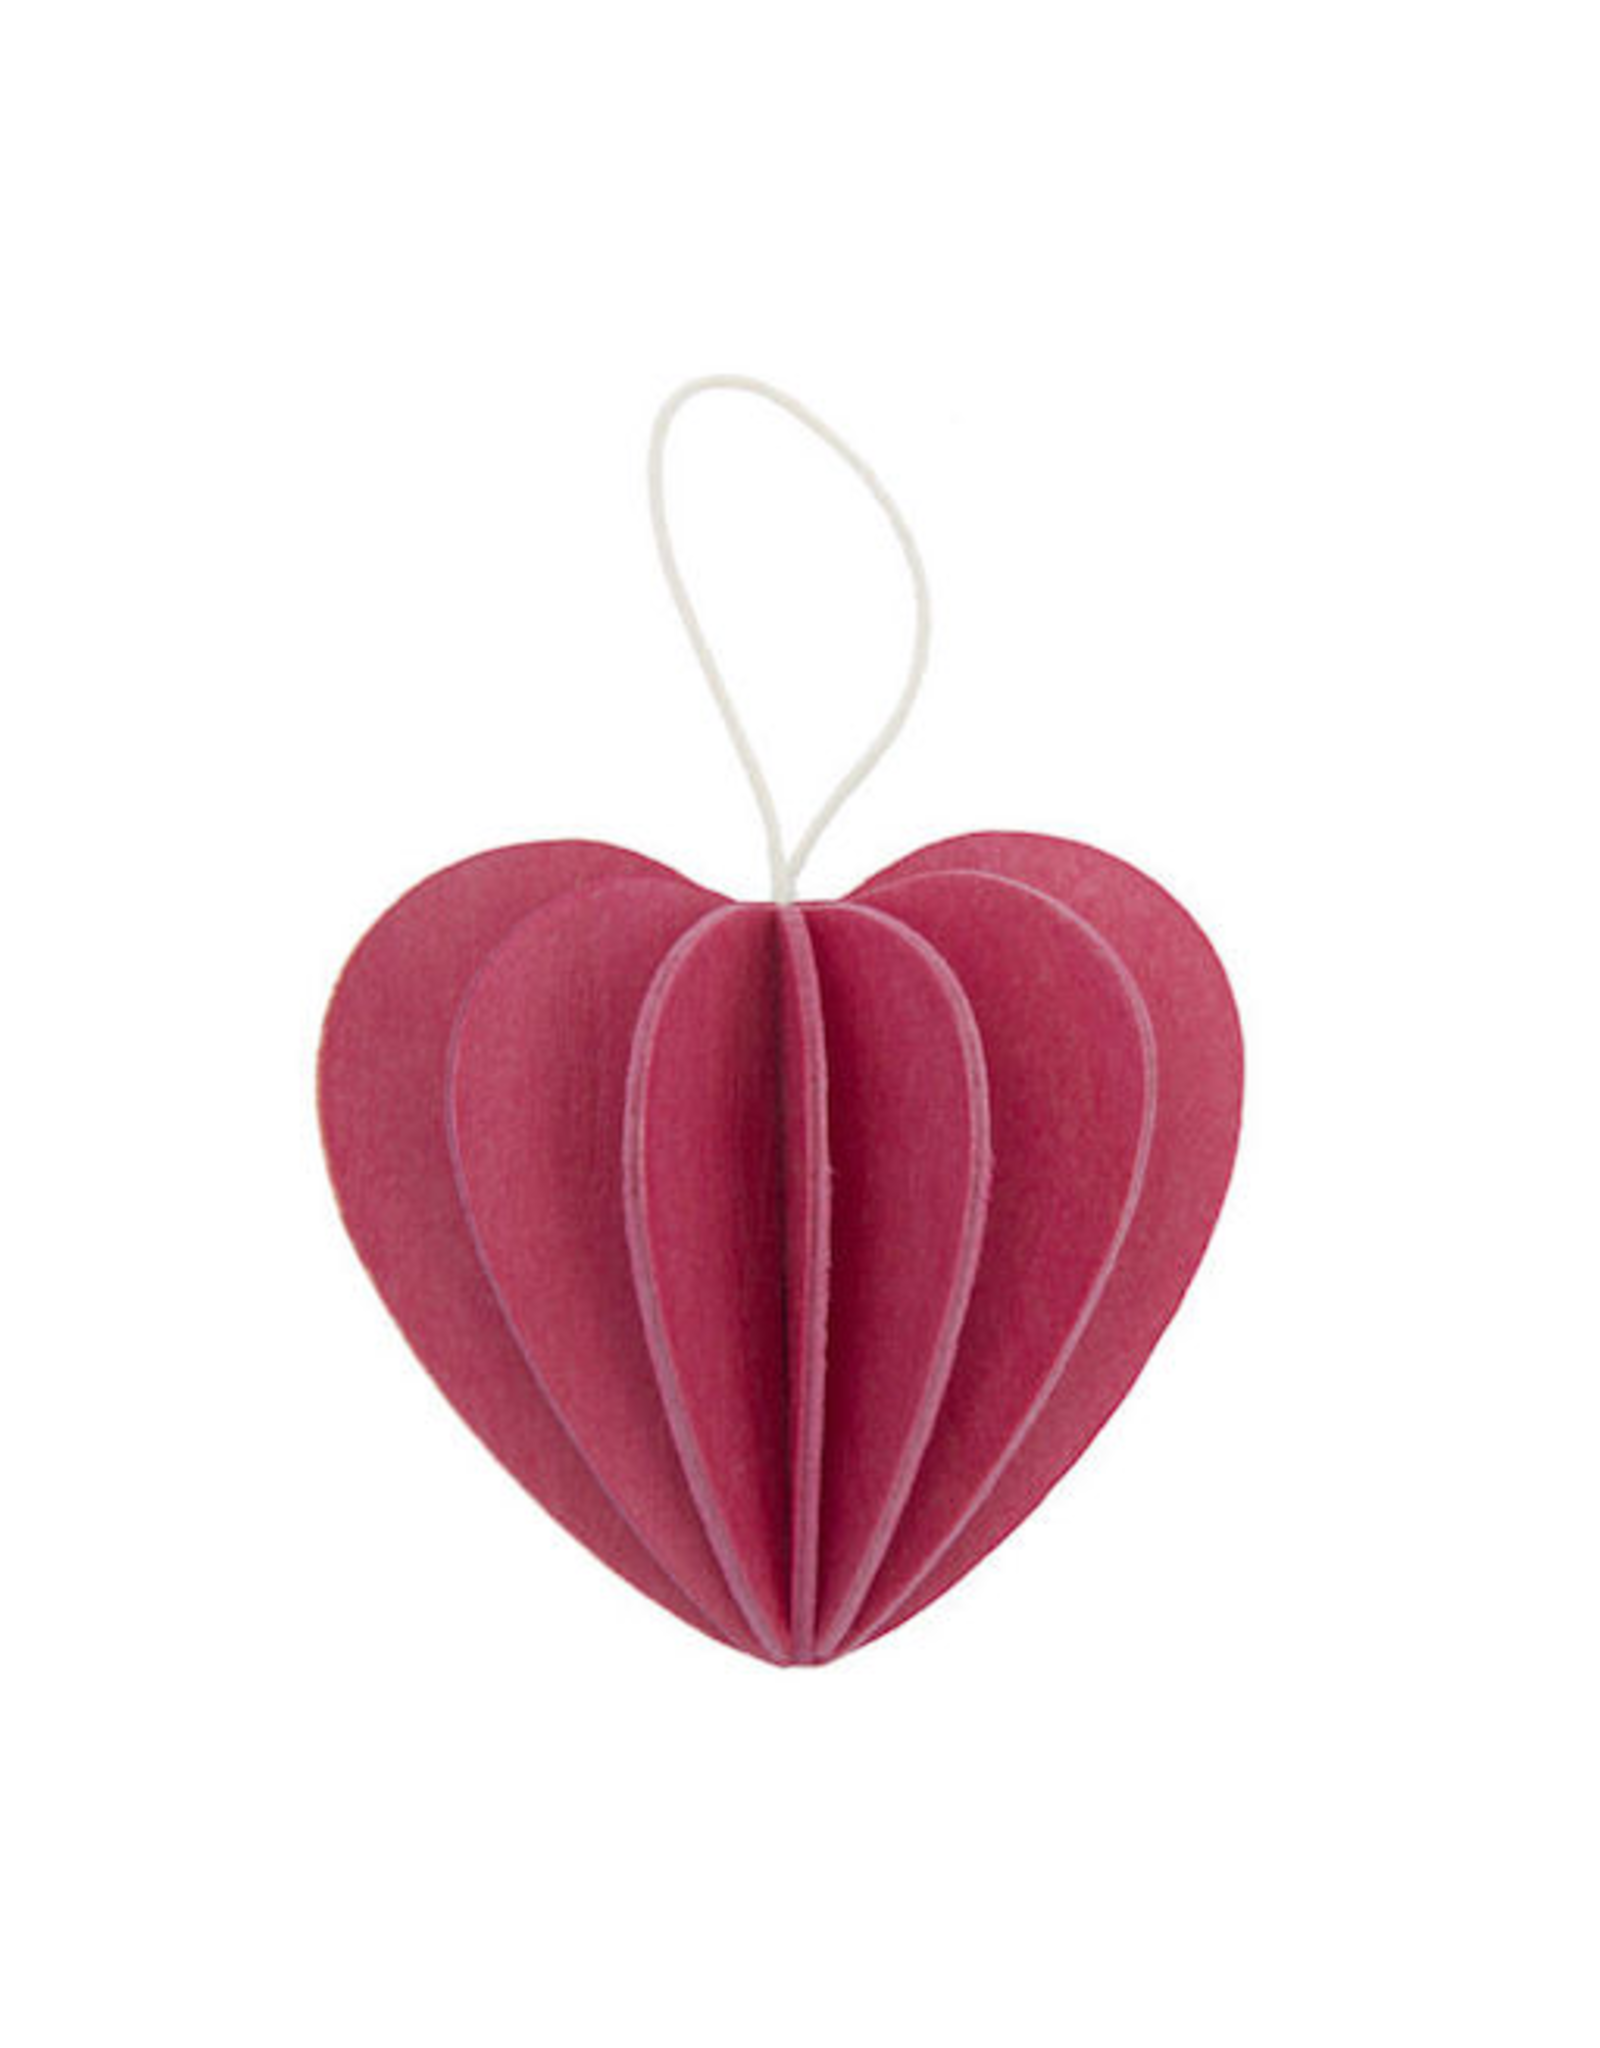 HEART SHAPED ORNAMENT IN PINK 7.3 CM